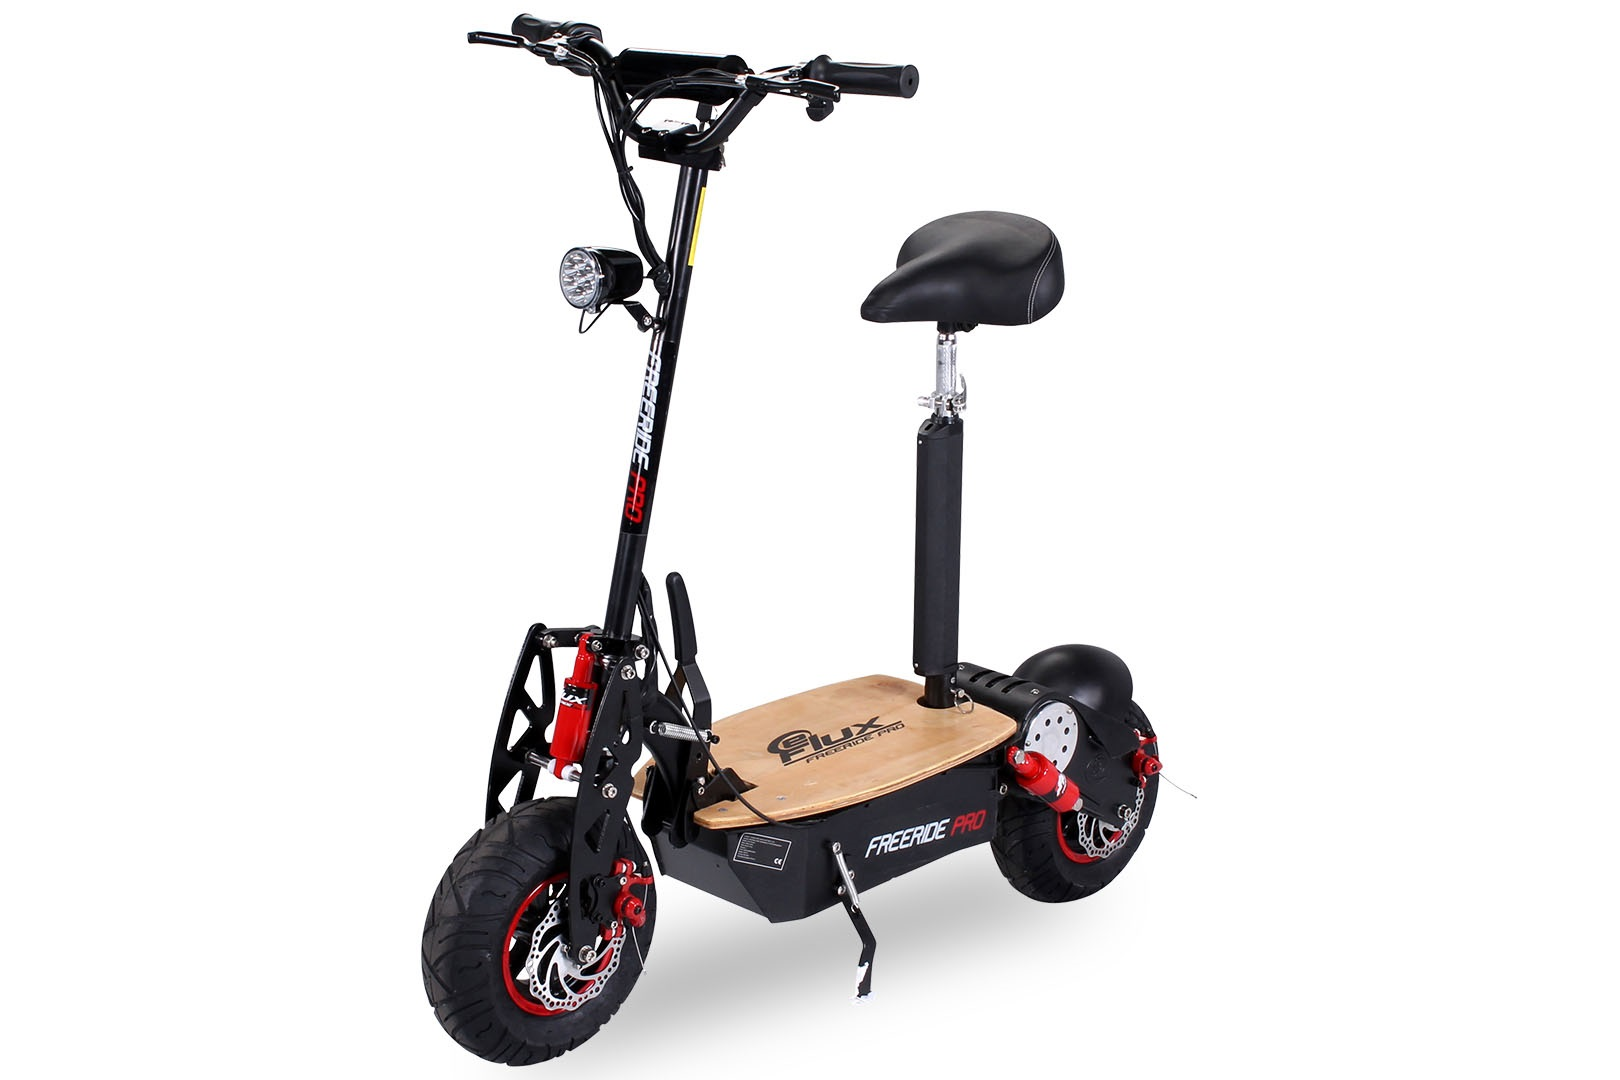 eflux freeride pro 1600 elektro scooter. Black Bedroom Furniture Sets. Home Design Ideas